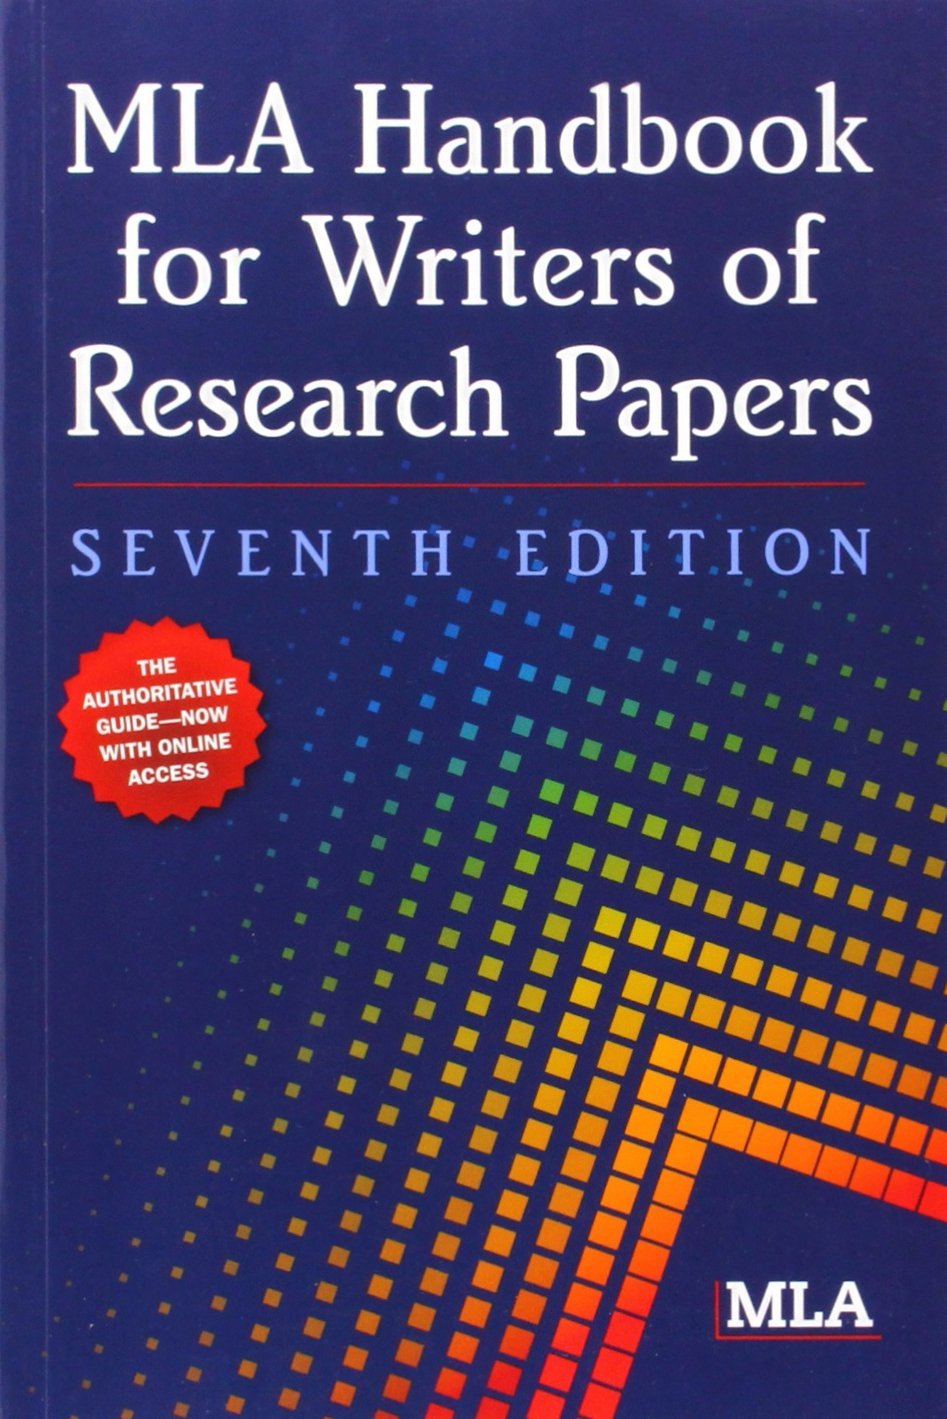 001 716vdknd8gl Research Paper Mla Handbook For Writers Of Unforgettable Papers 7th Edition Pdf Download 8th Amazon 6th Full